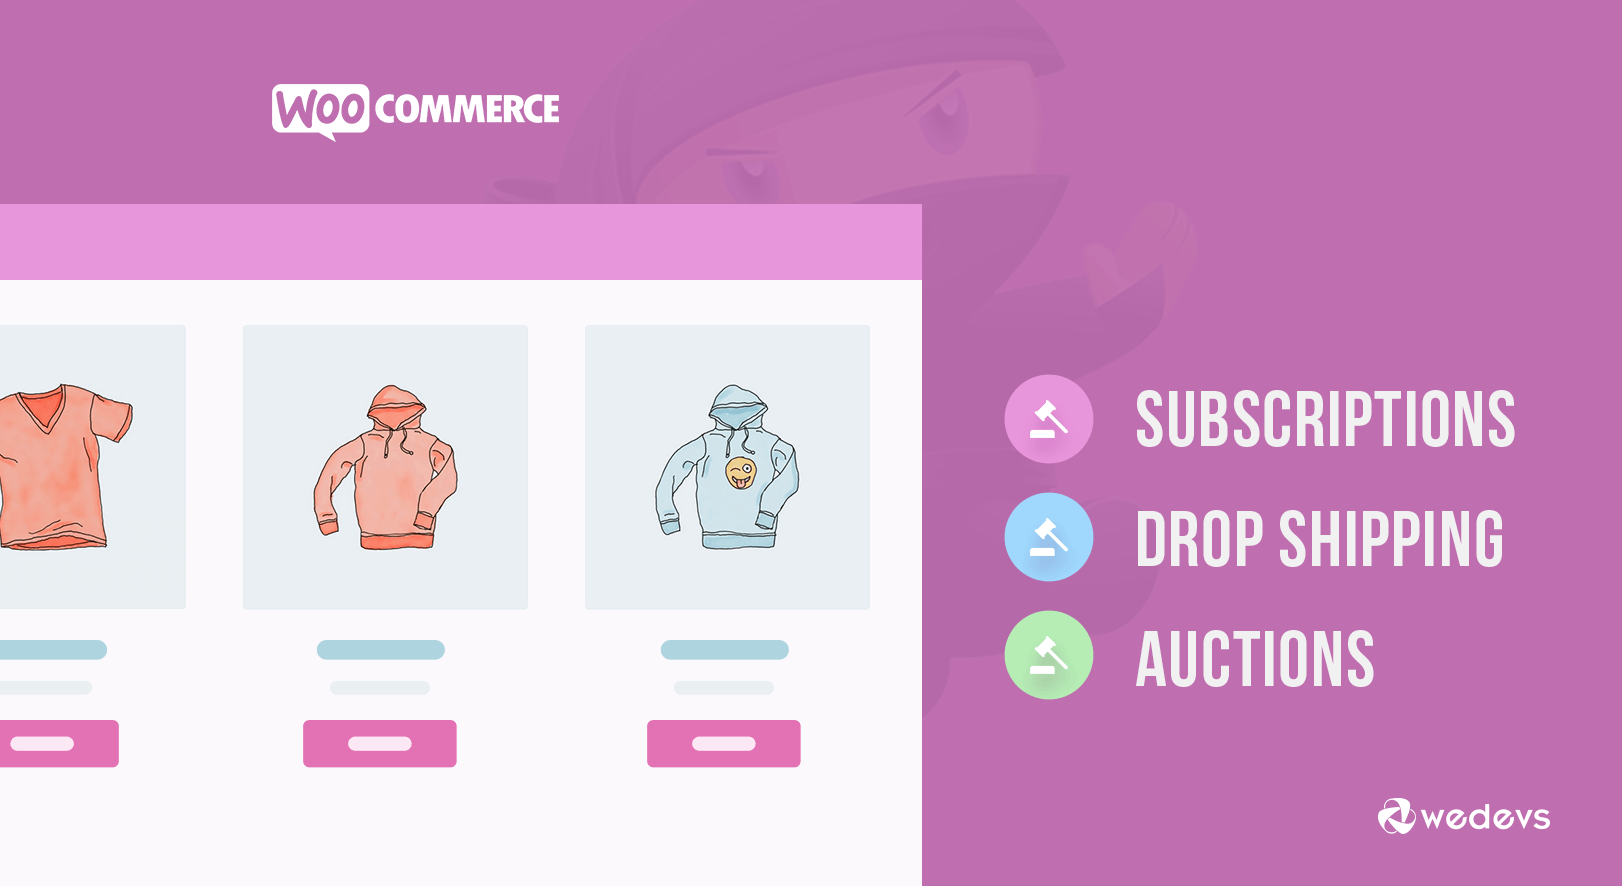 Important Features You May Not Know Woocommerce Offers